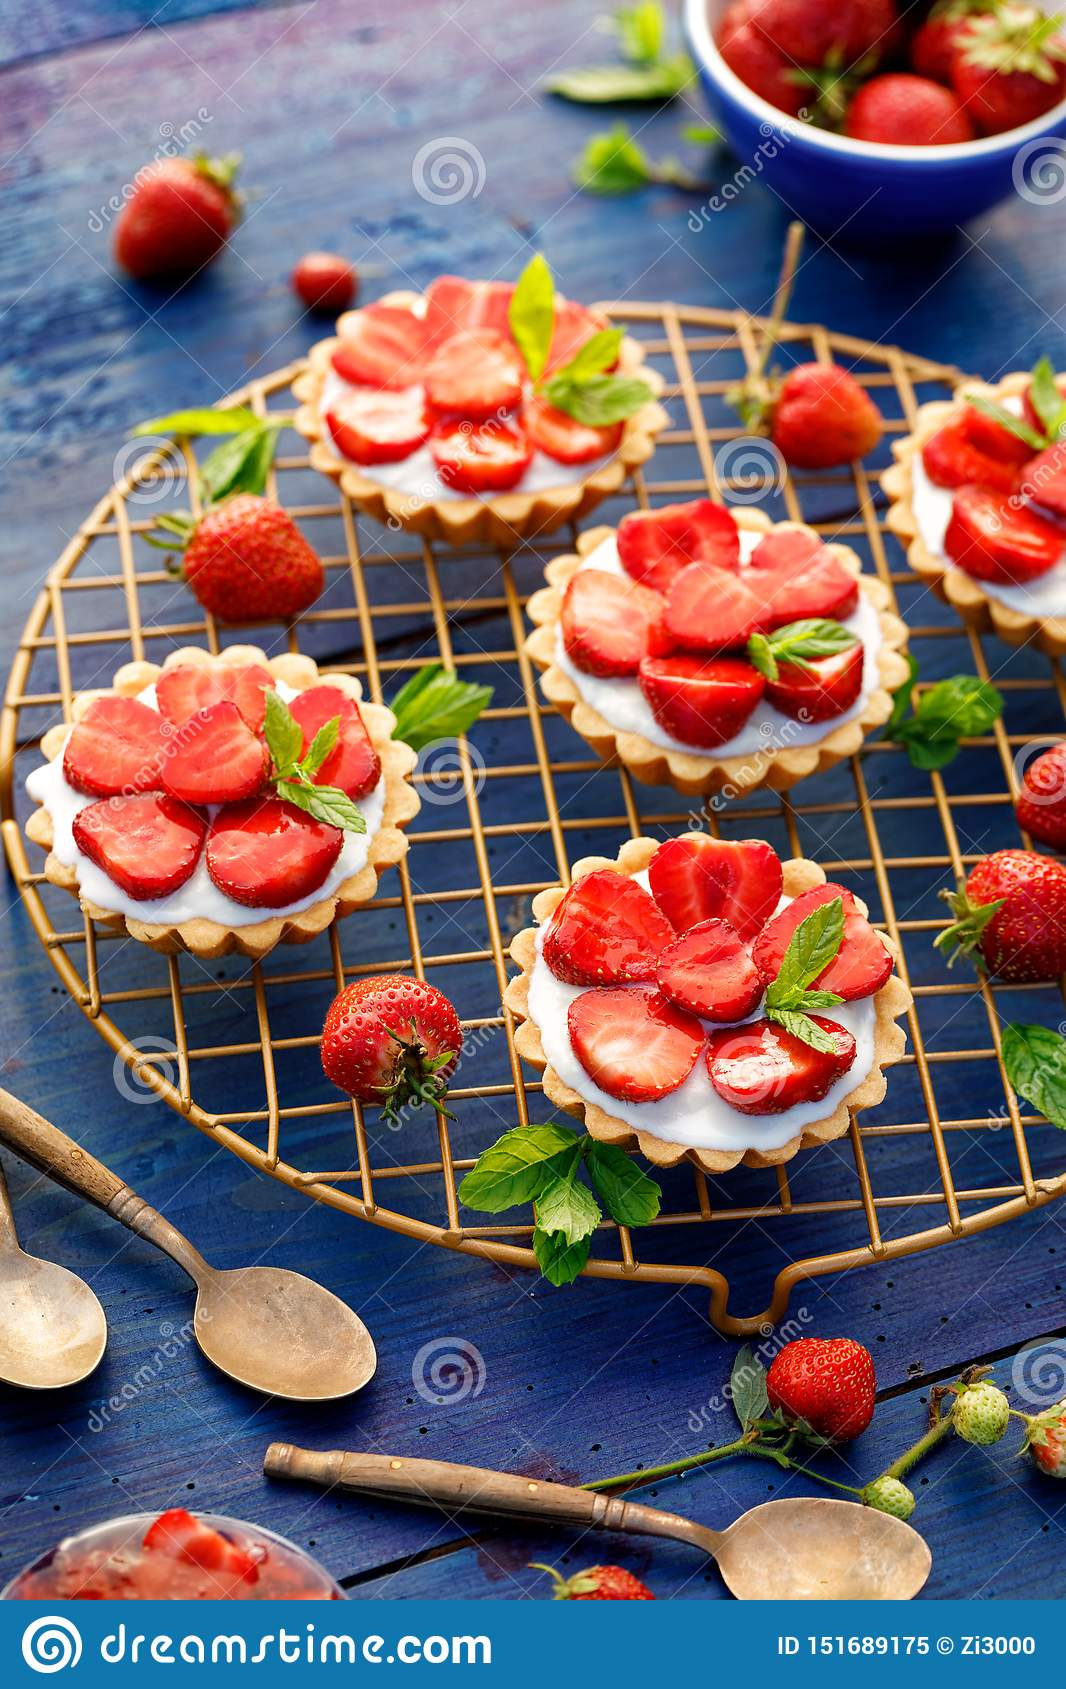 Strawberry tarts, small shortbread tarts with the addition of cream cheese, fresh strawberries  on a cooling tray